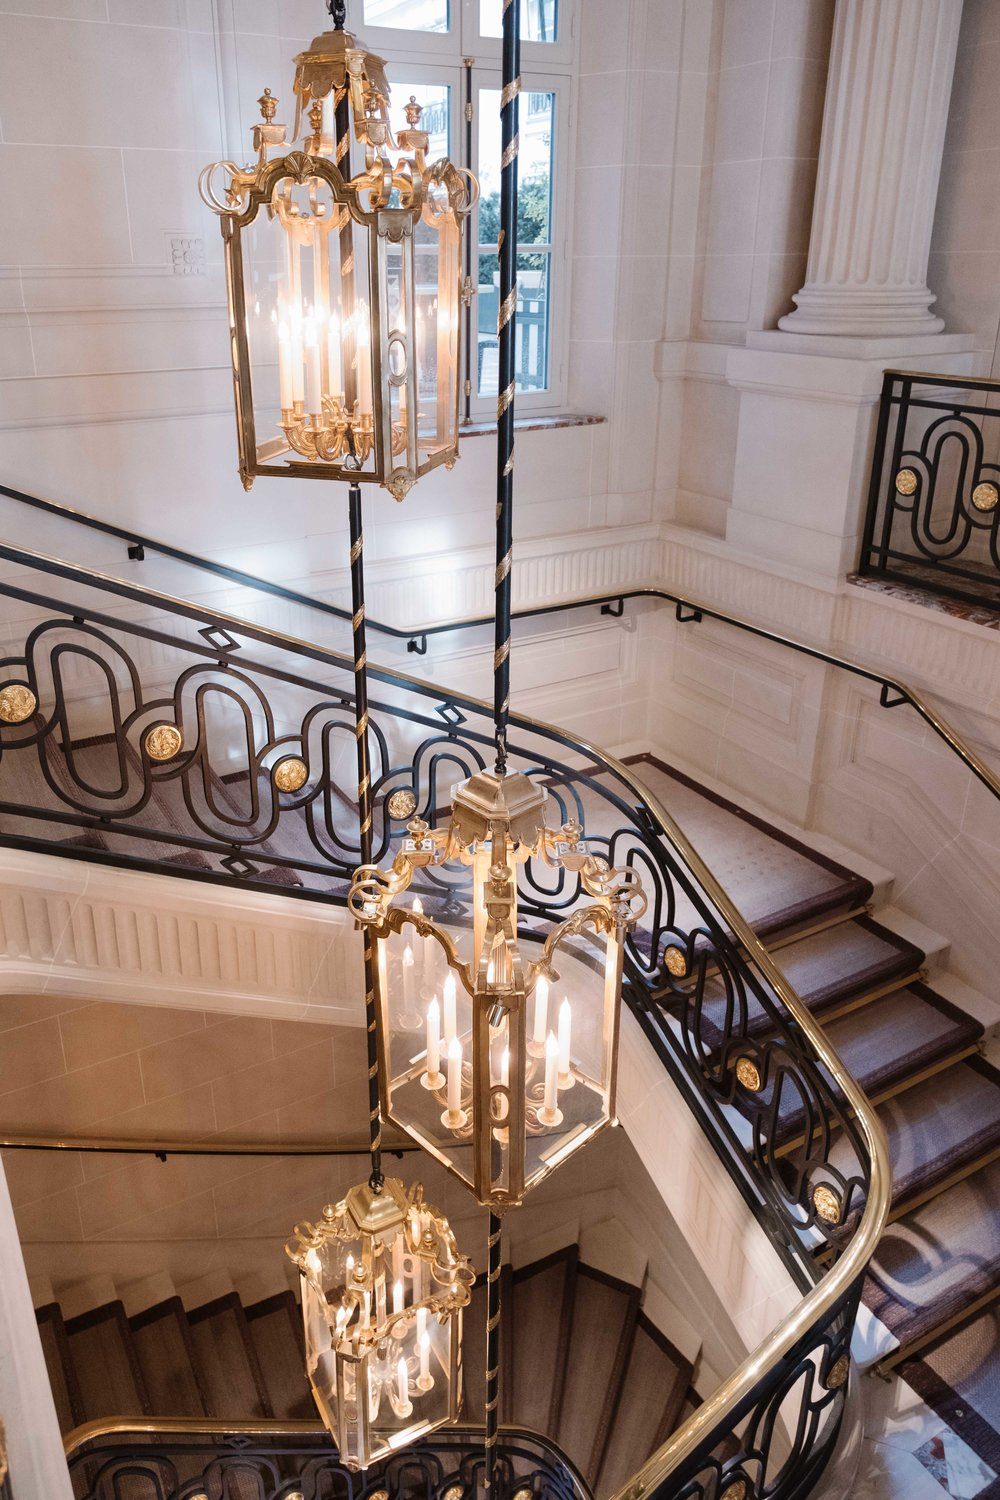 Hotel Crillon Paris - Via Tolila